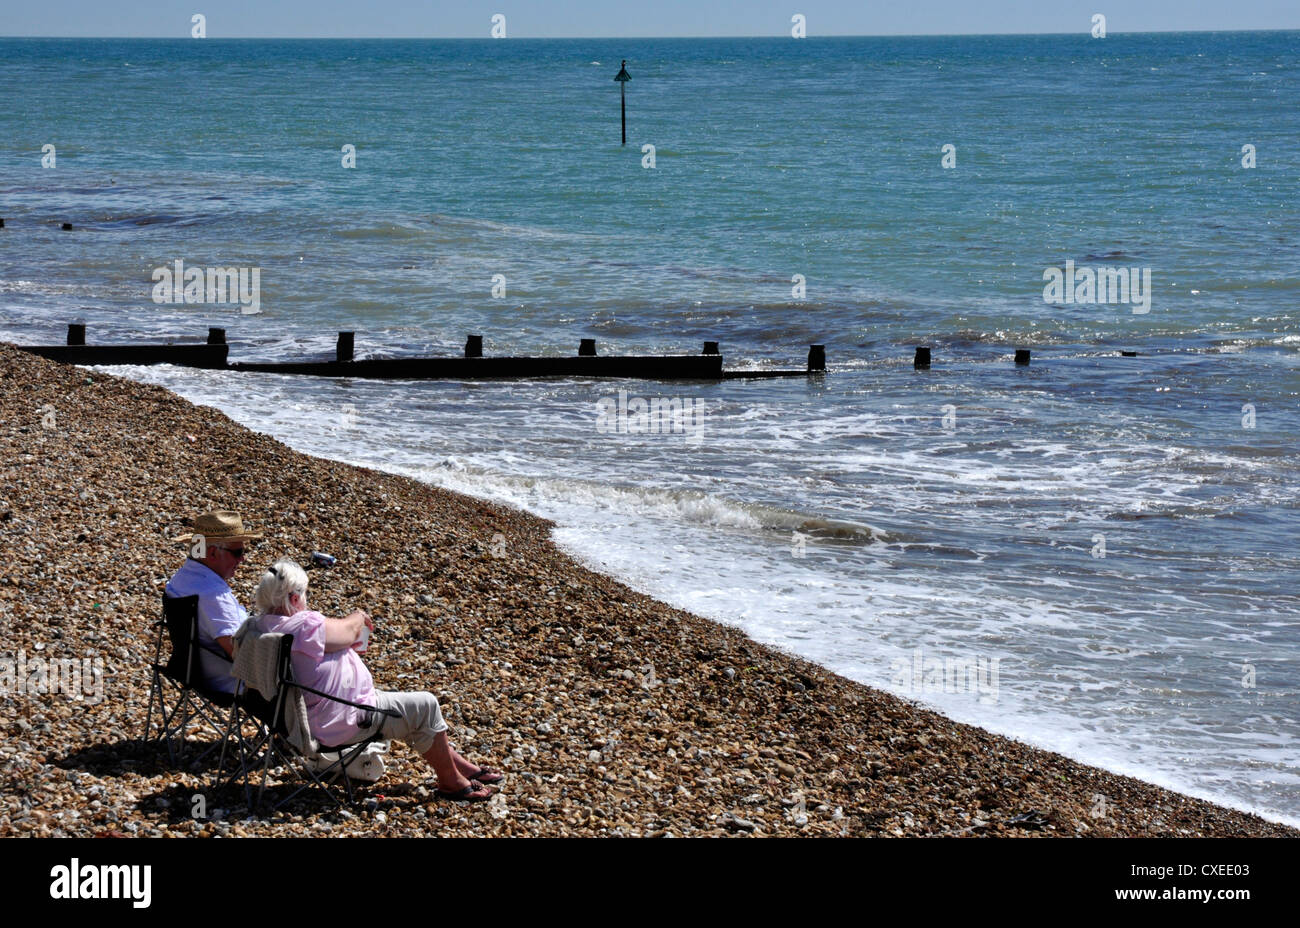 Elderly couple enjoying sea and sunshine - chairs on a pebble beach - gentle waves lapping the shore - Stock Image